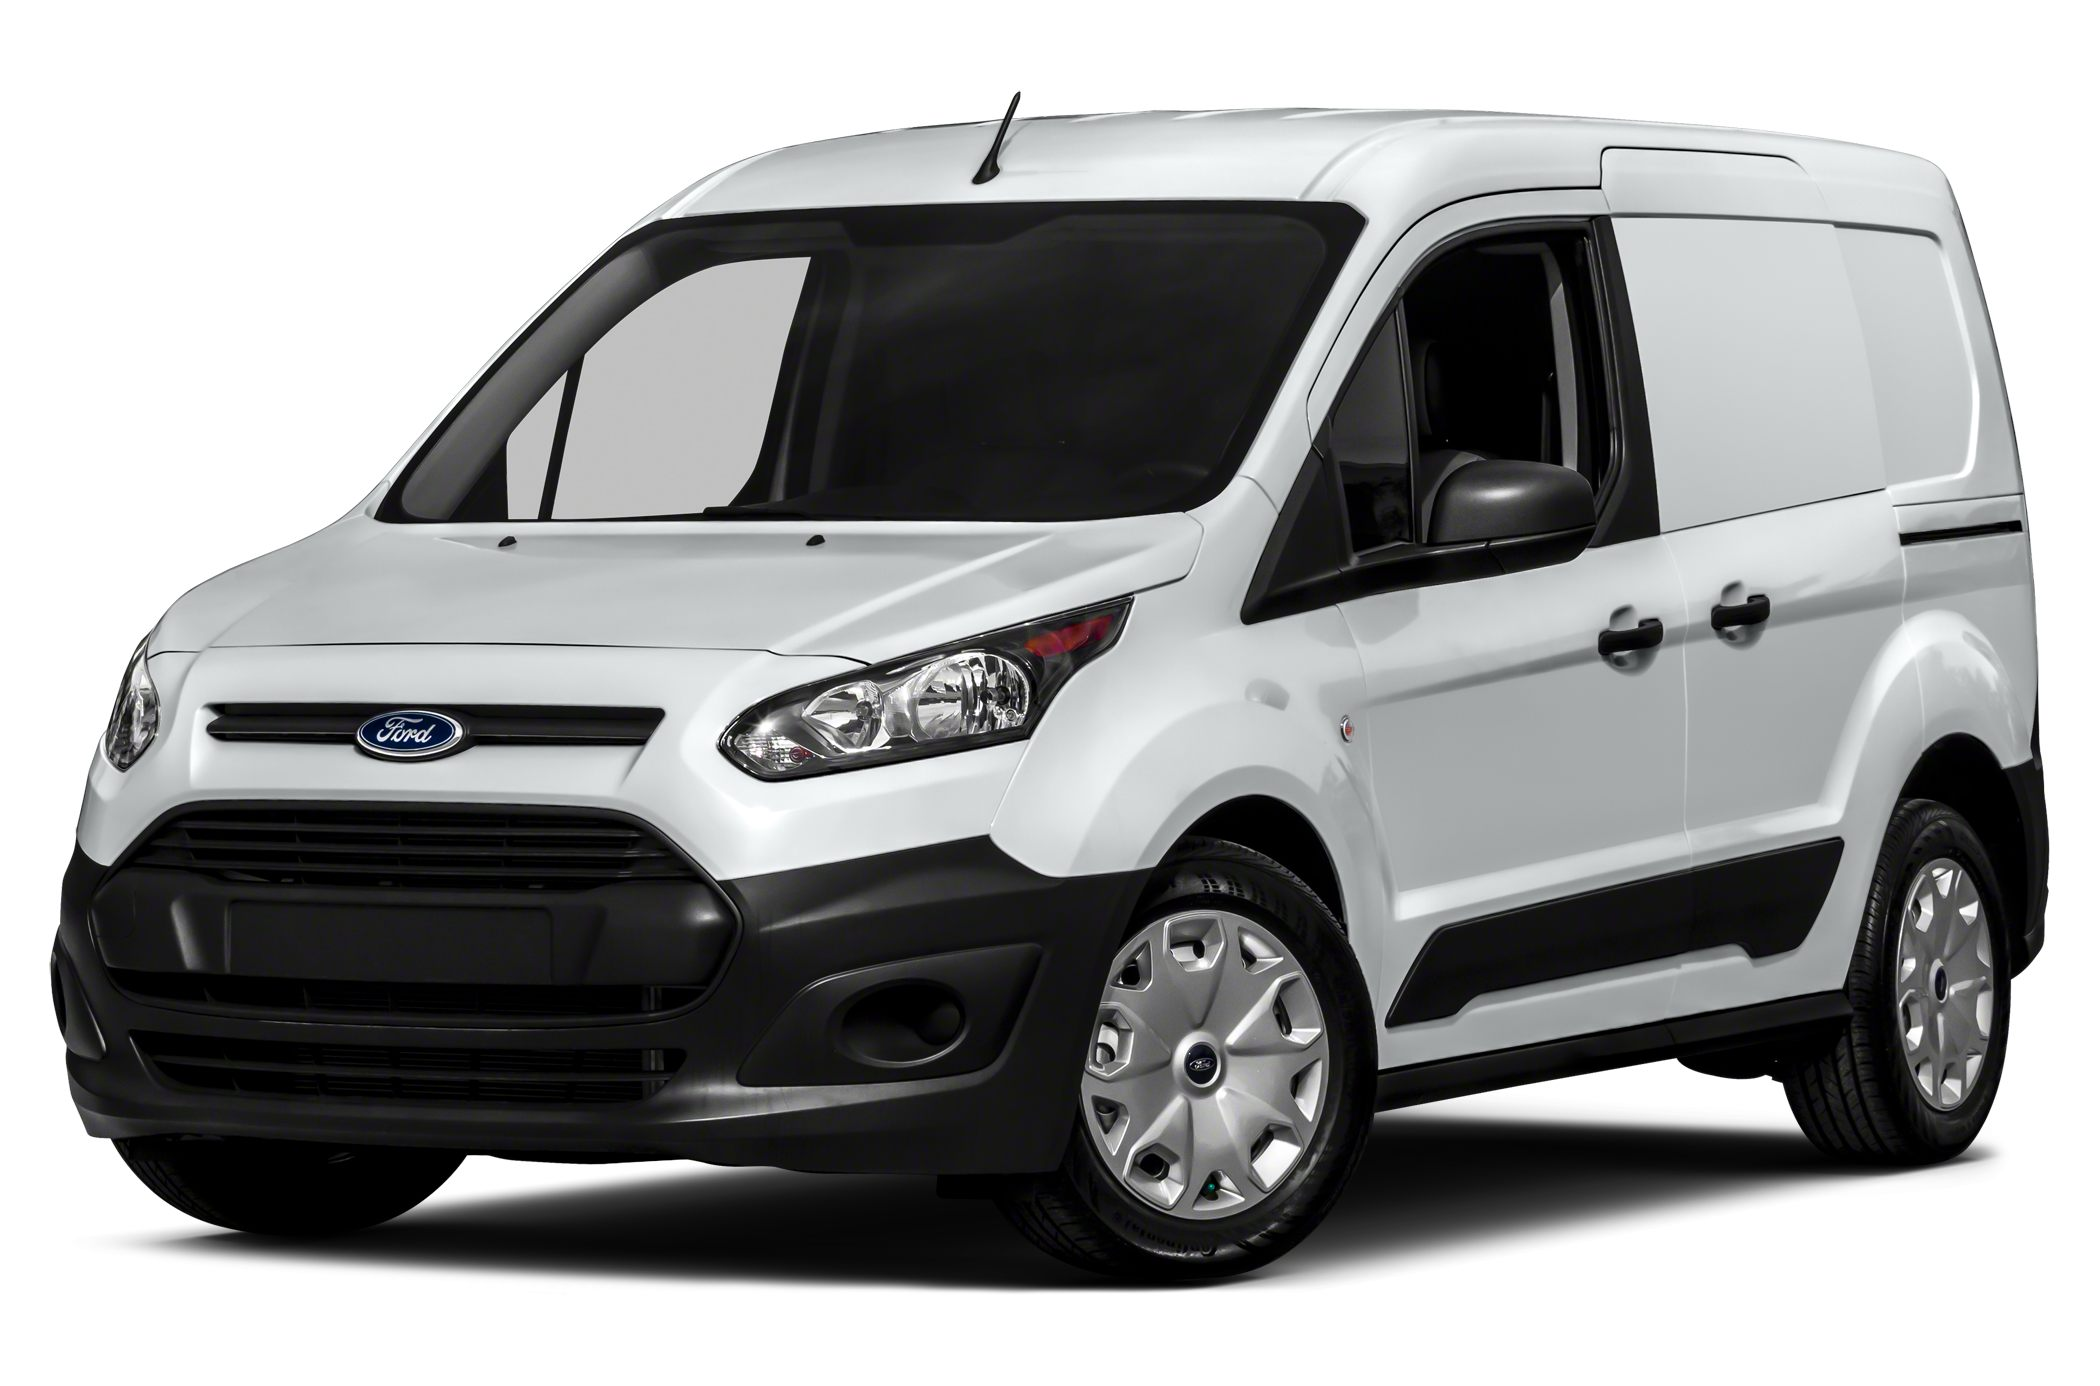 2015 Ford Transit Connect Specs Safety Rating & MPG CarsDirect